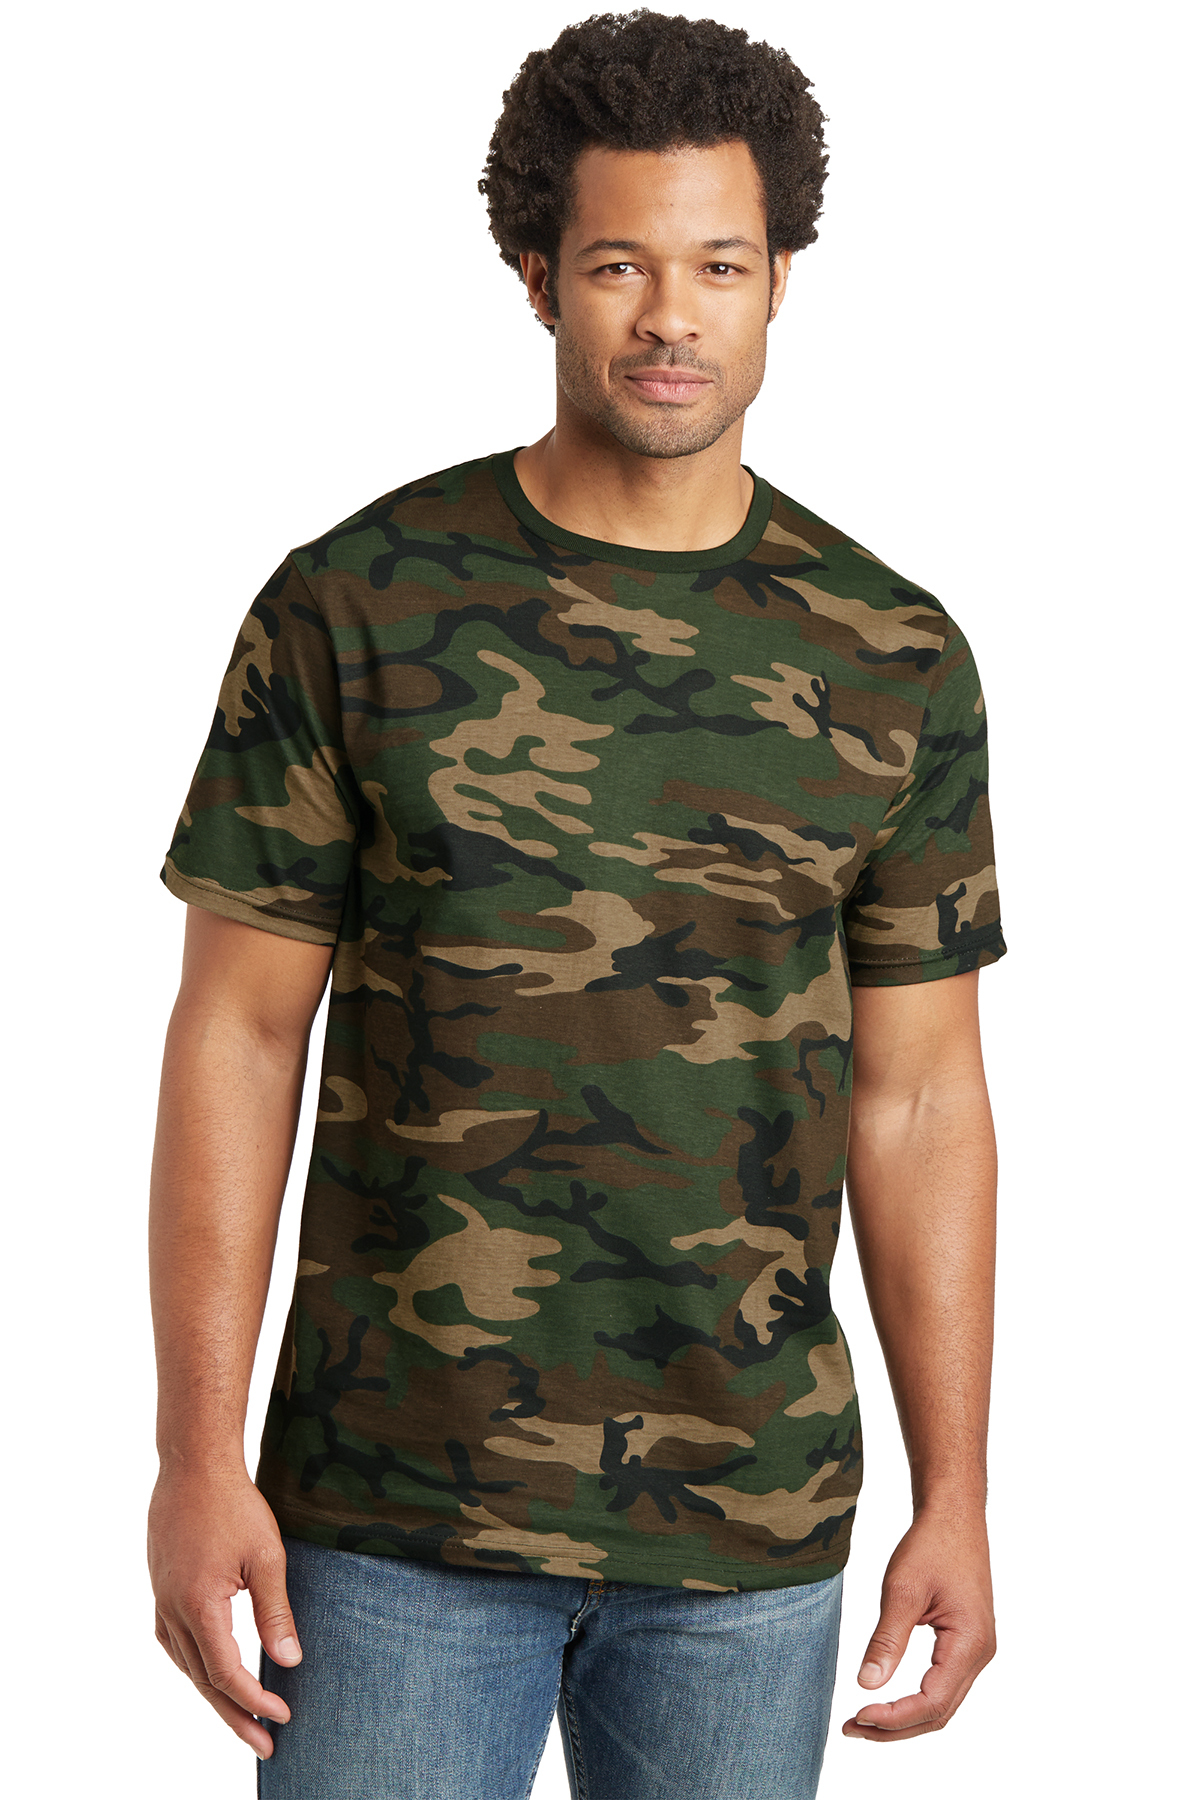 District Threads DT104C Camo Perfect Weight District Tee.